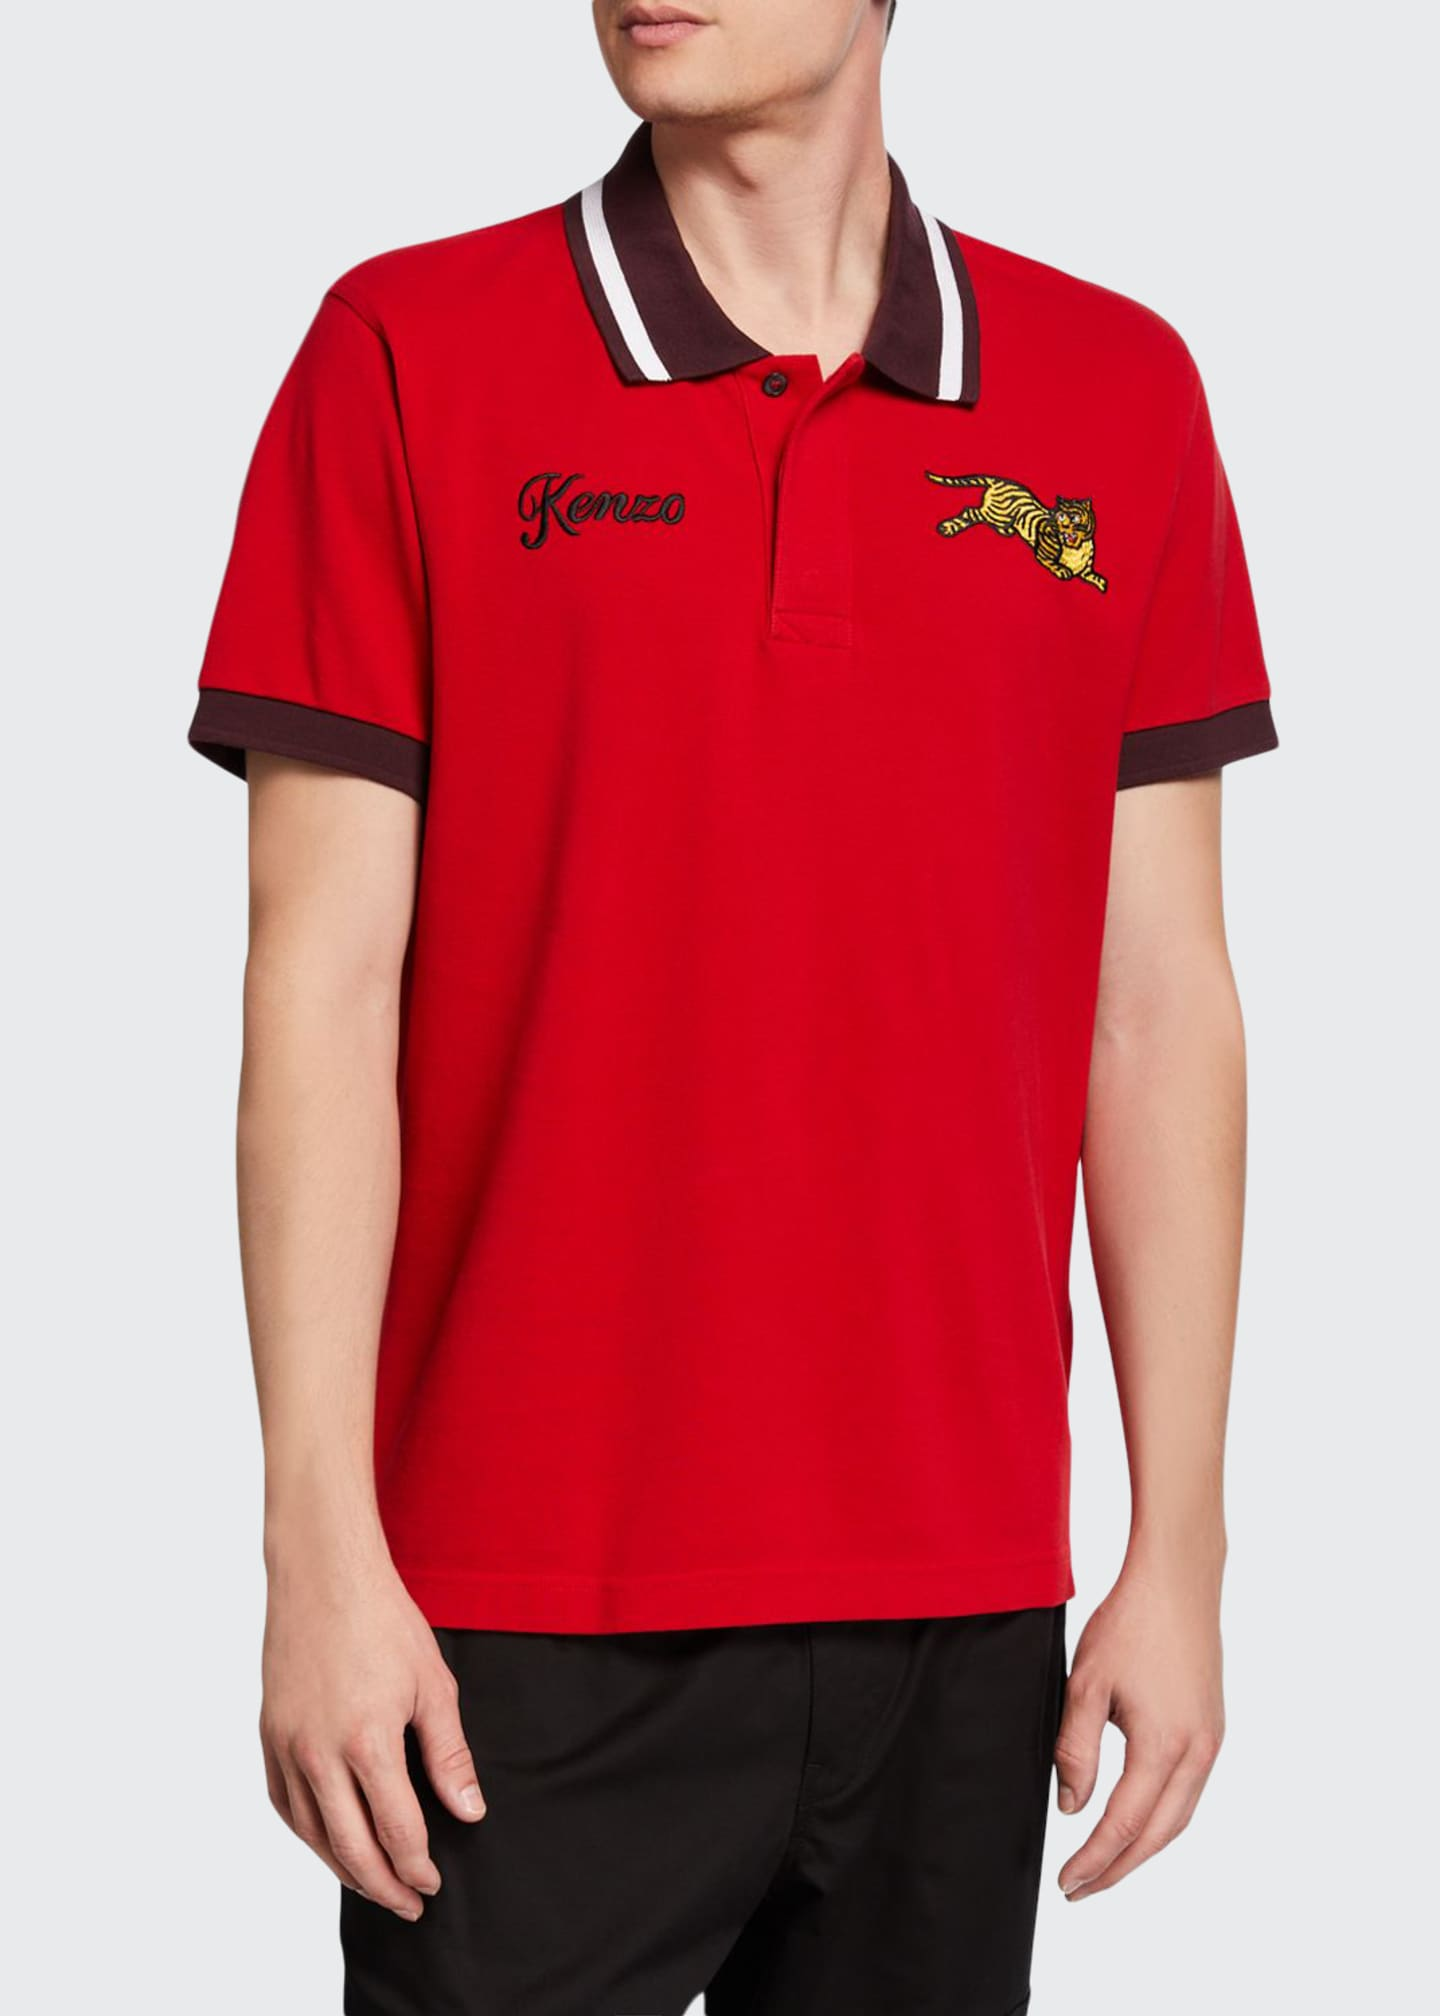 Kenzo Men's Jumping Tiger Polo Shirt with Contrast